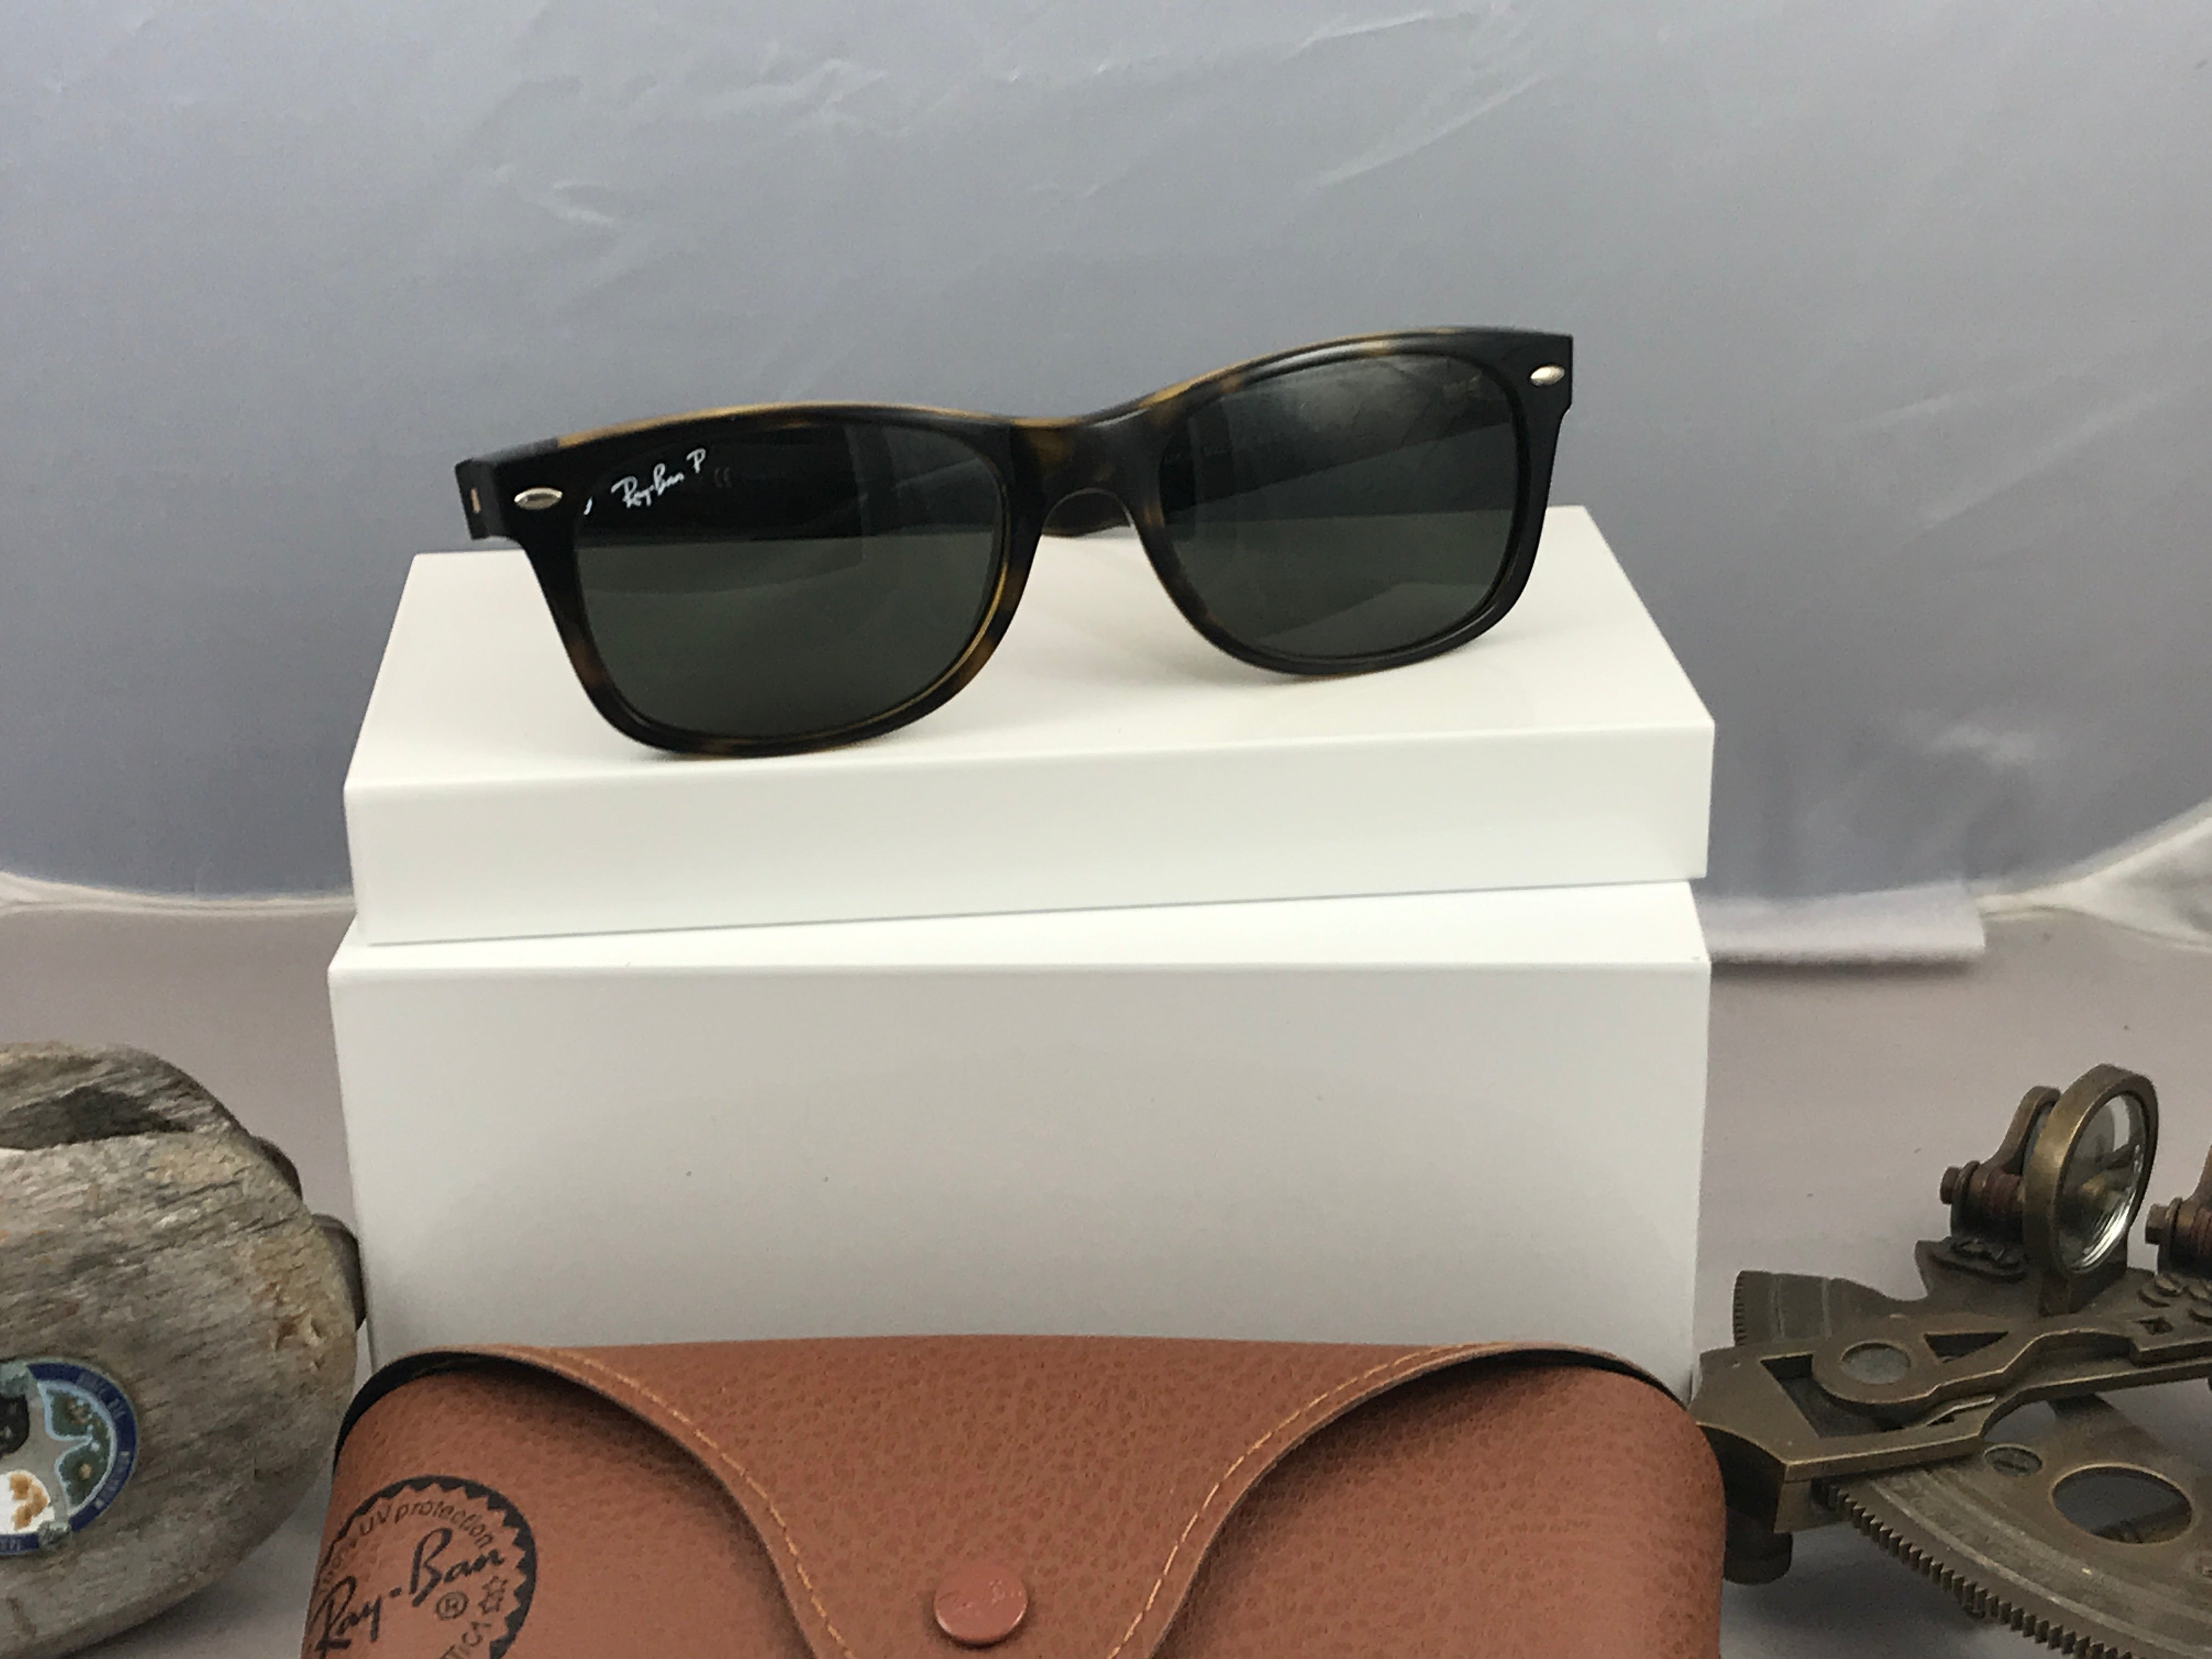 Ray-Ban Sunglasses 2132 in 902/58 DME CODE: V2025